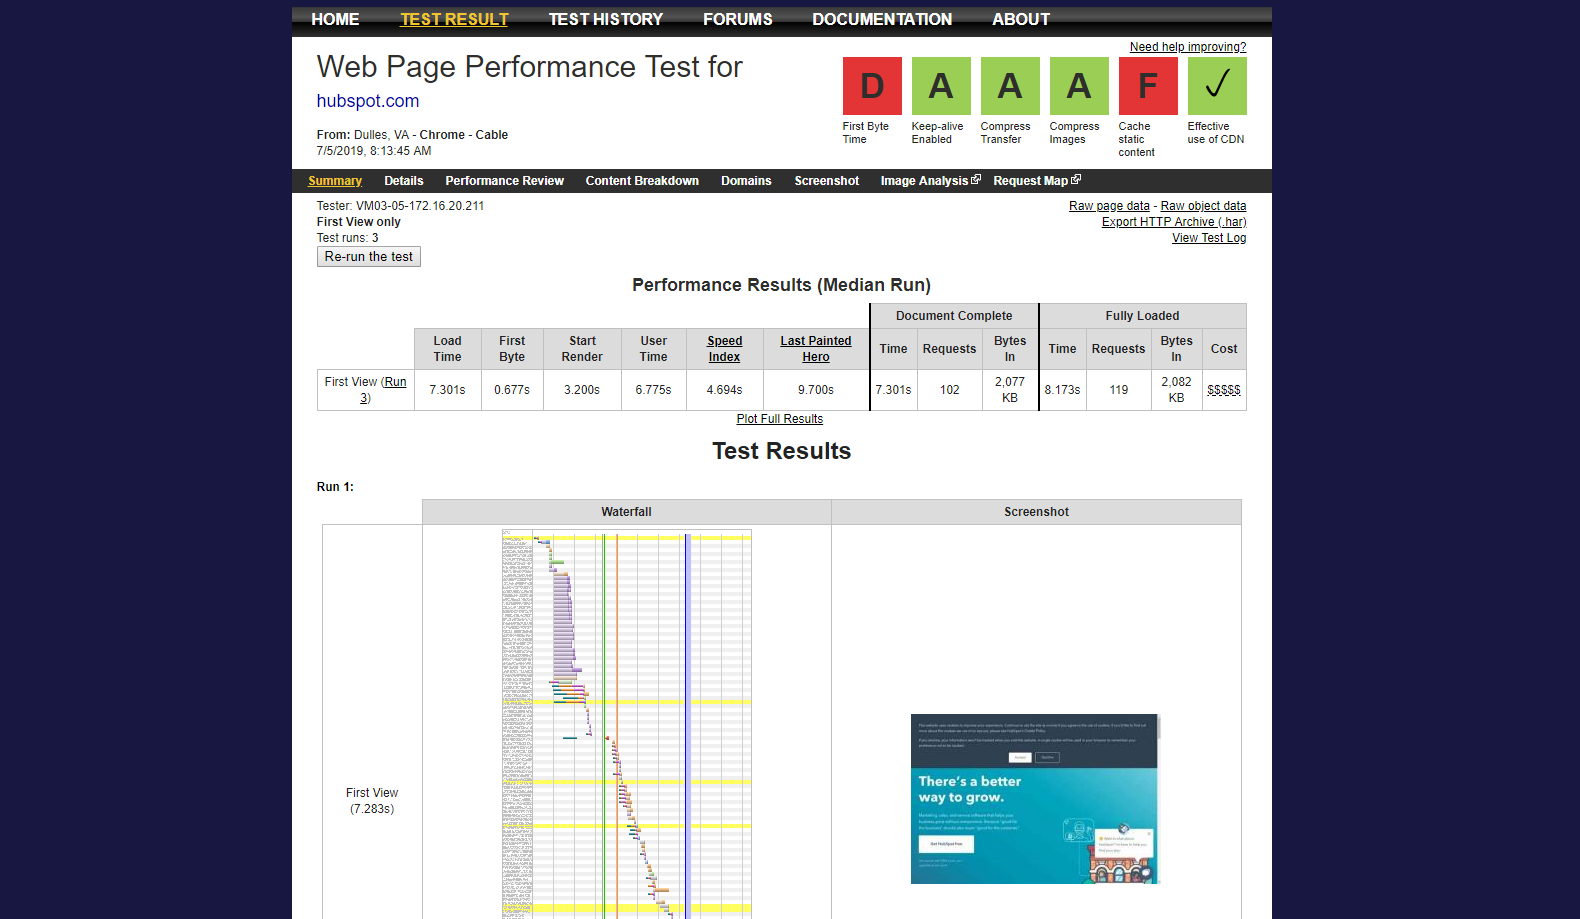 WebPageTest results